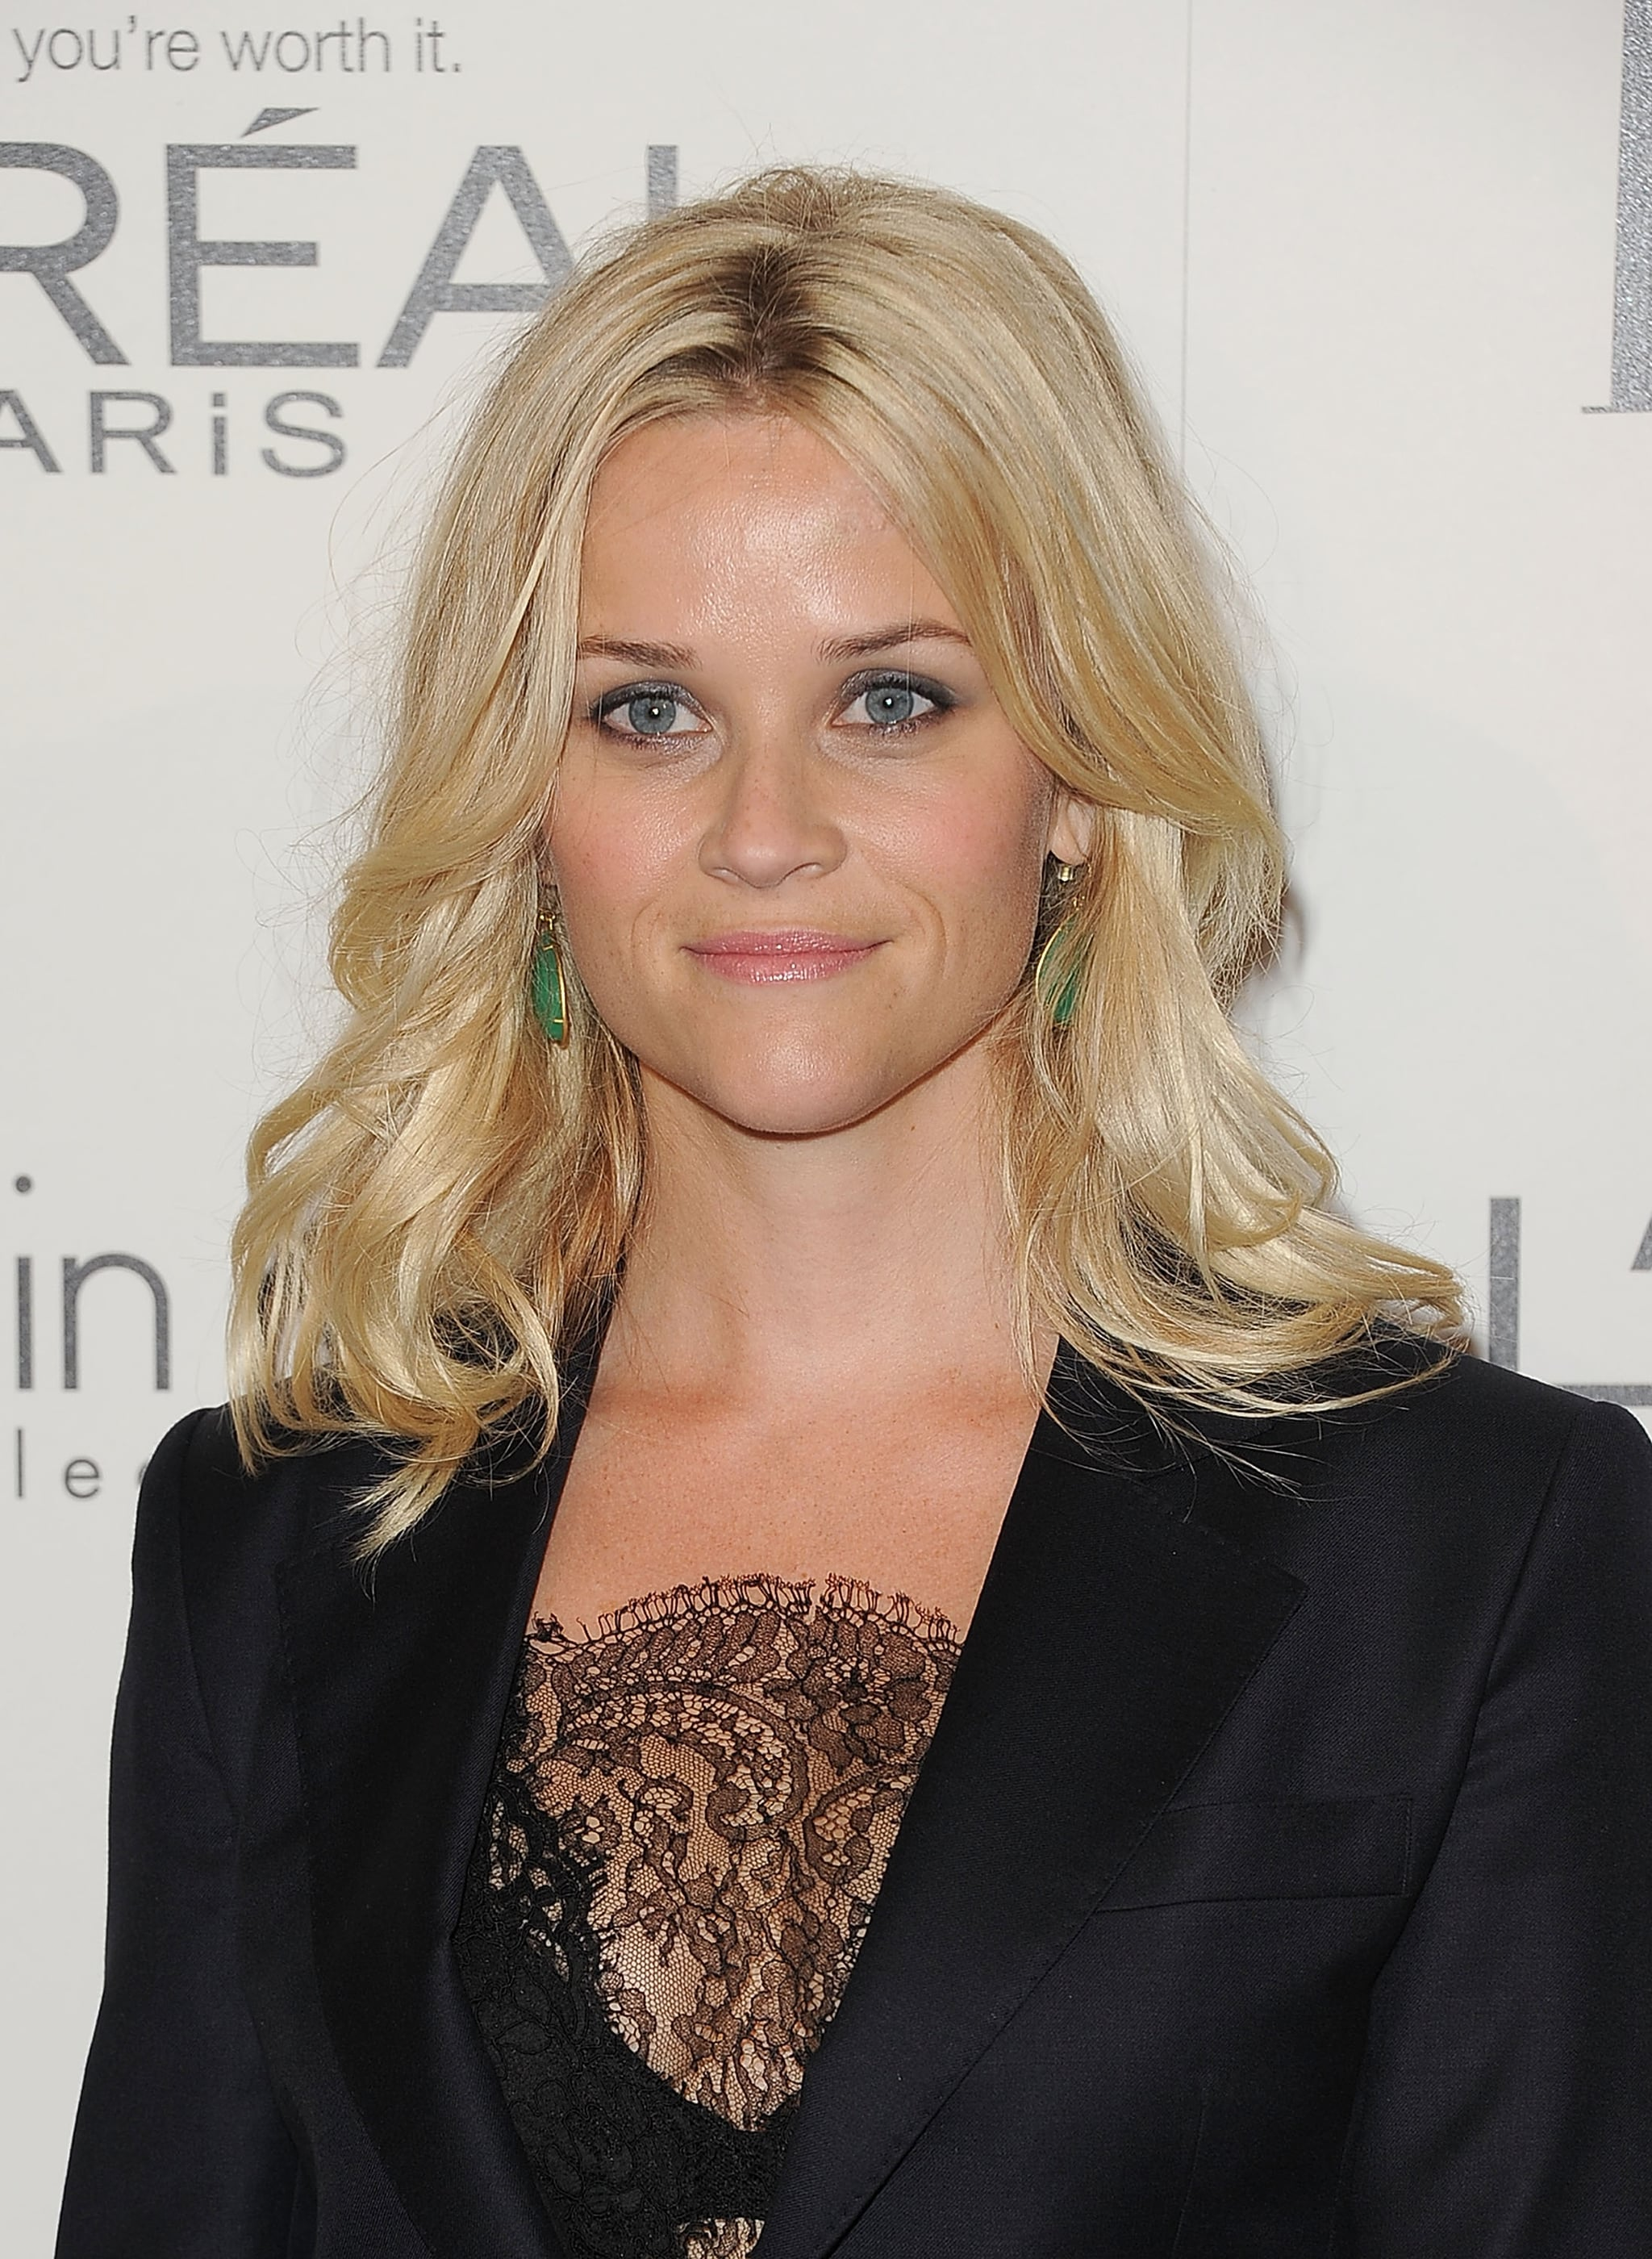 Reese Witherspoon wore a lace inset to an event in LA.